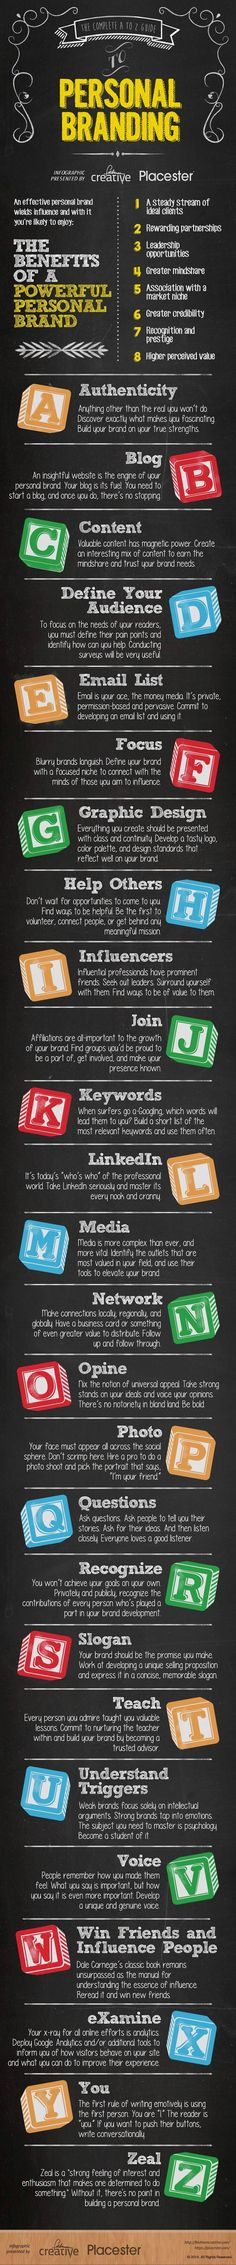 Food infographic The complete A to Z guide to personal branding. Infographic Description The complete A to Z guide to personal branding - Infographic Business Branding, Business Marketing, Content Marketing, Social Media Marketing, Business Tips, Corporate Branding, Logo Branding, Online Business, Branding Process